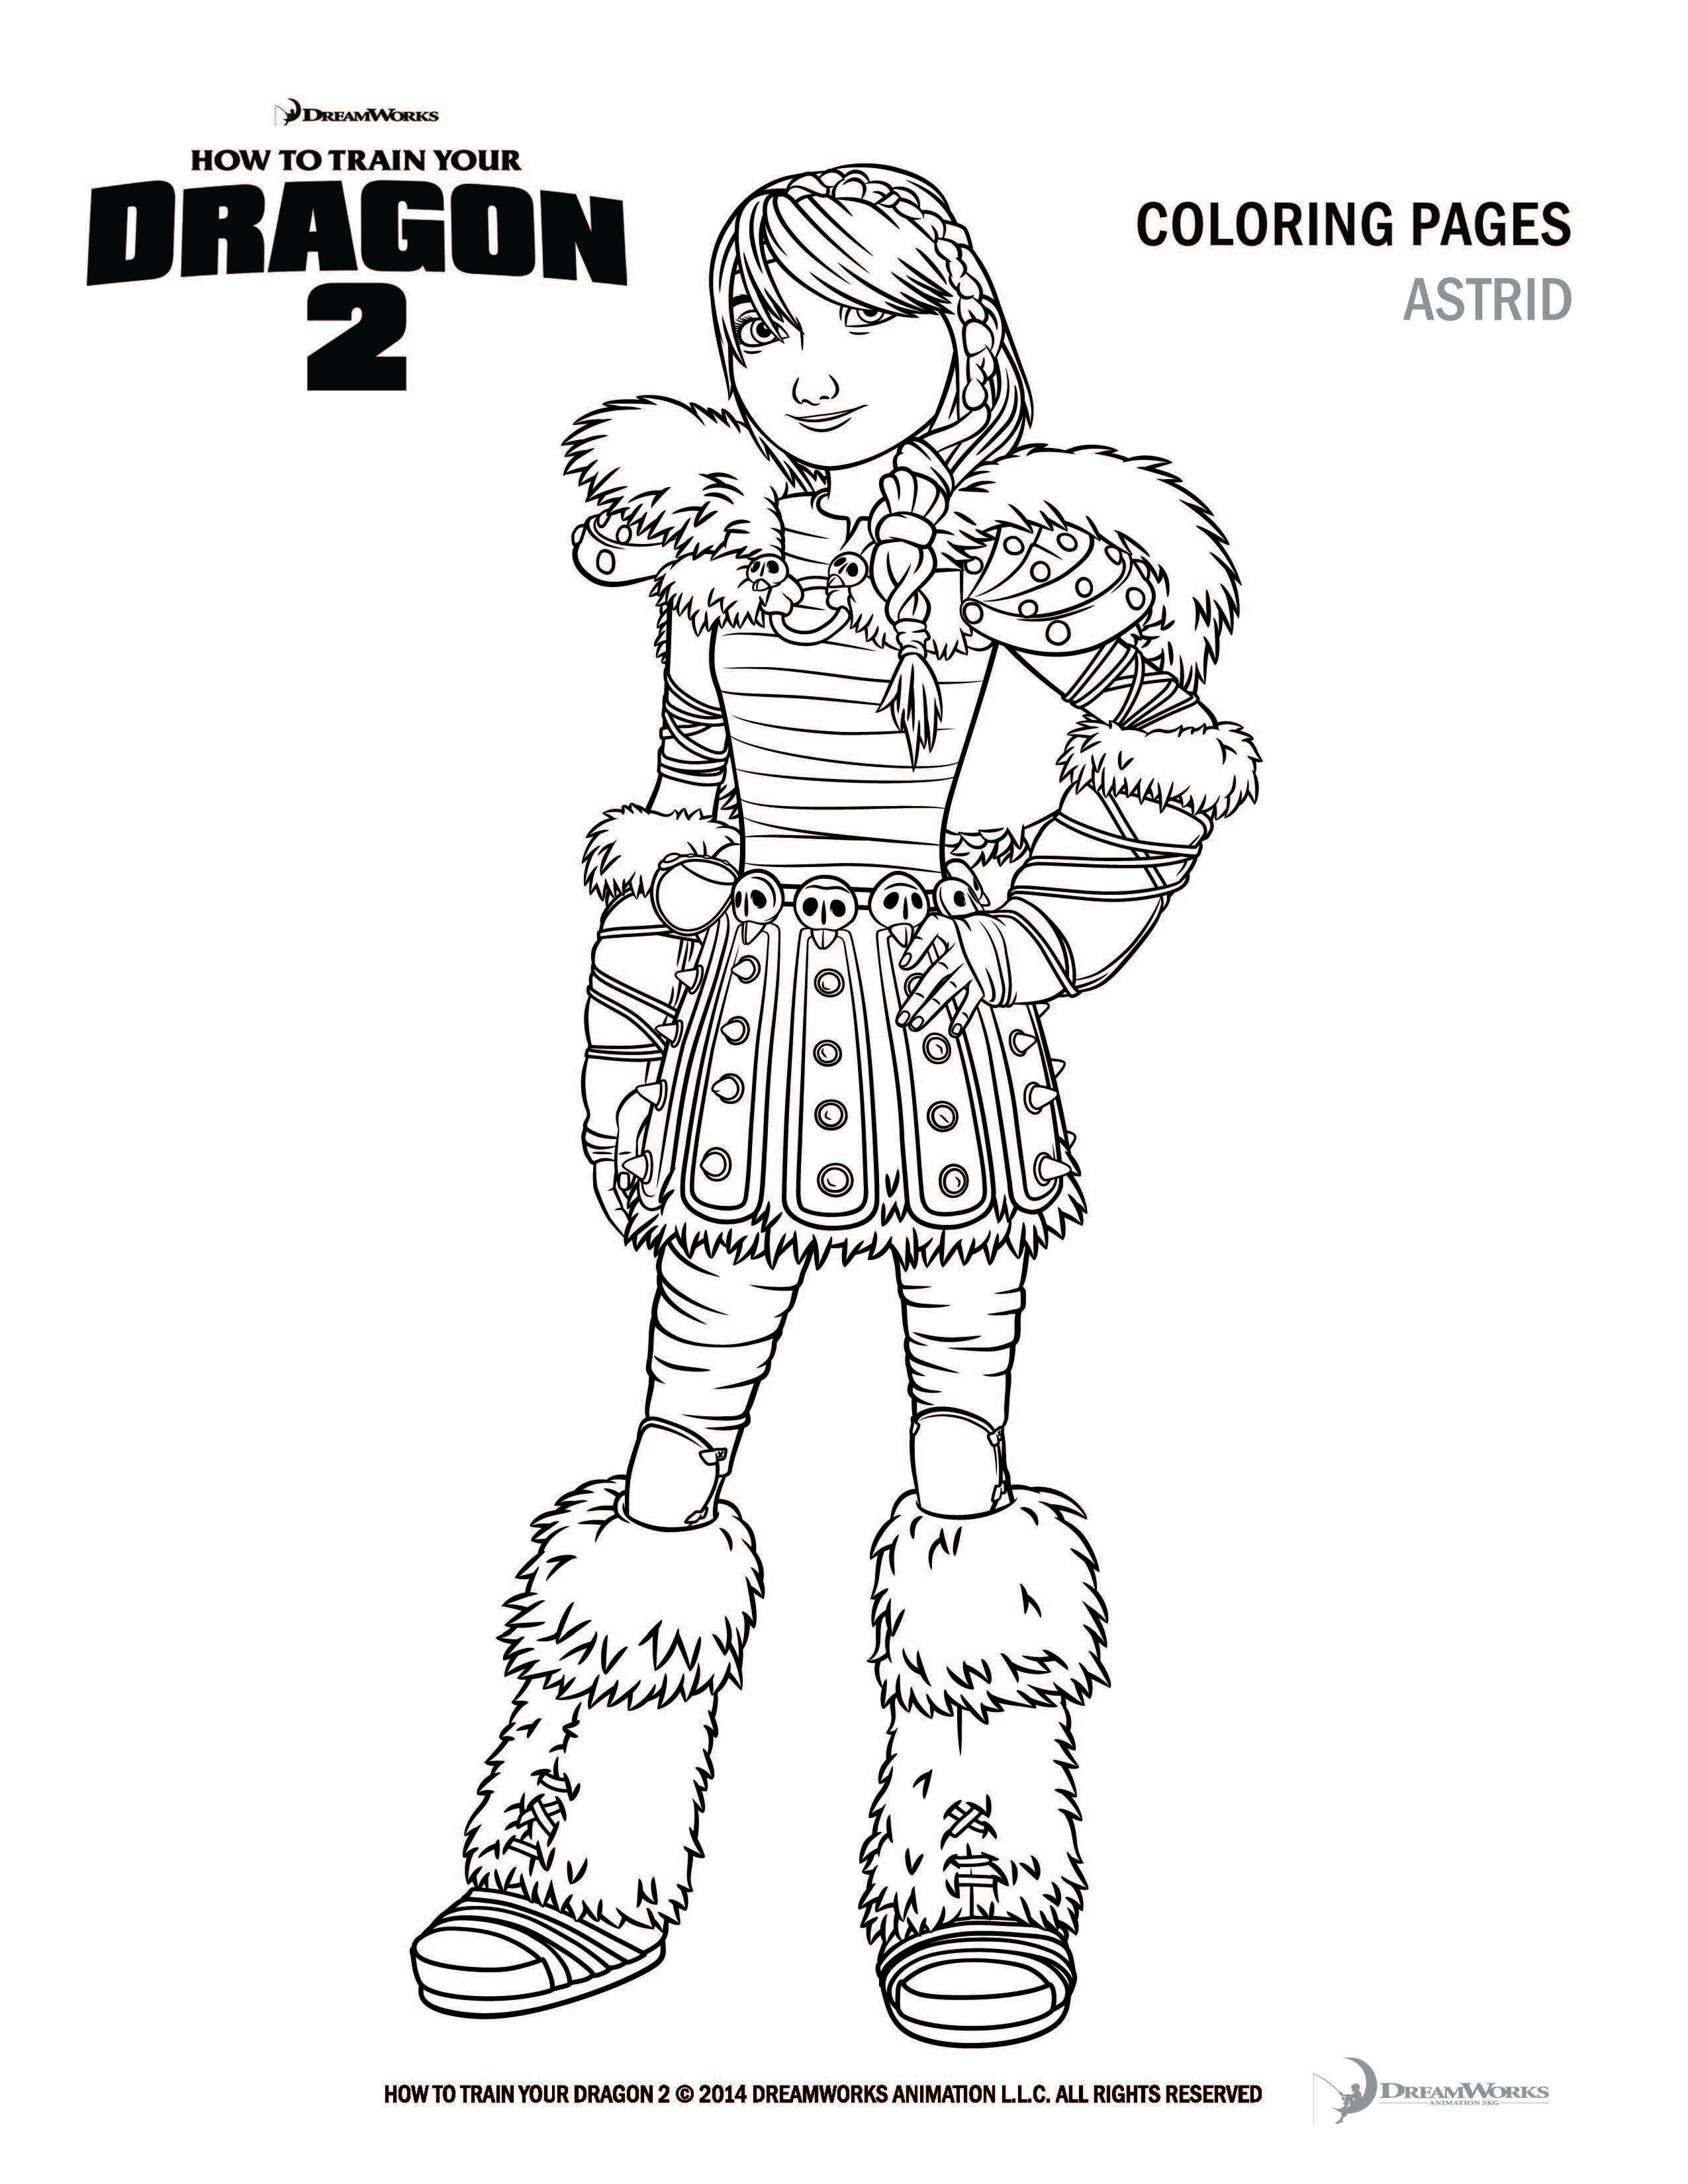 How To Train Your Dragon Coloring Pages And Activity Sheets In 2020 Dragon Coloring Page How Train Your Dragon Coloring Pages